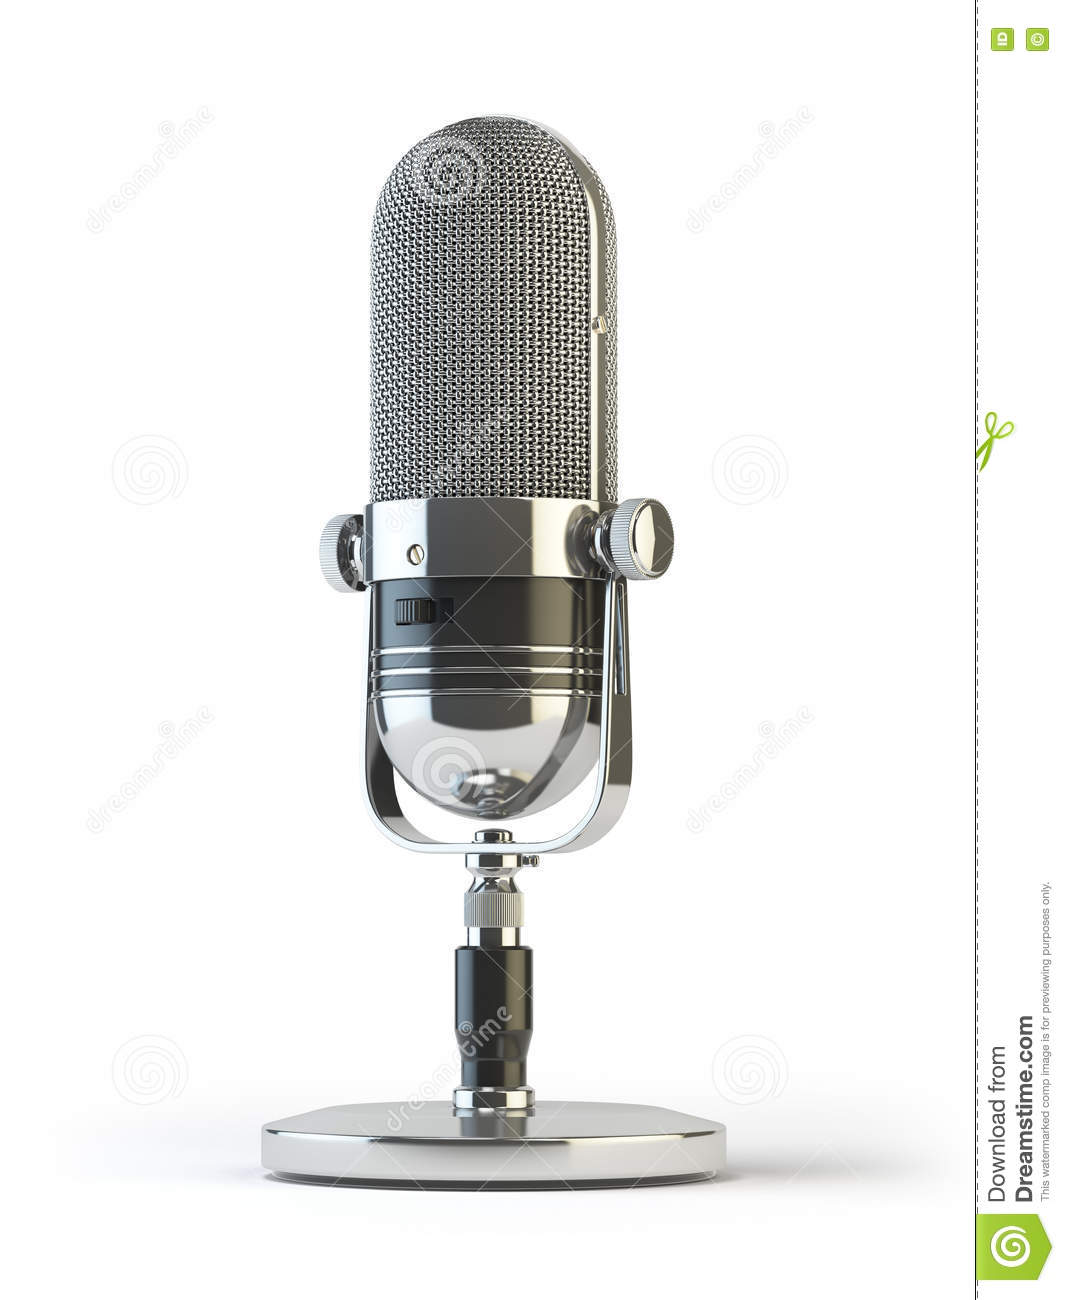 Retro old microphone isolated on white. Vintage,